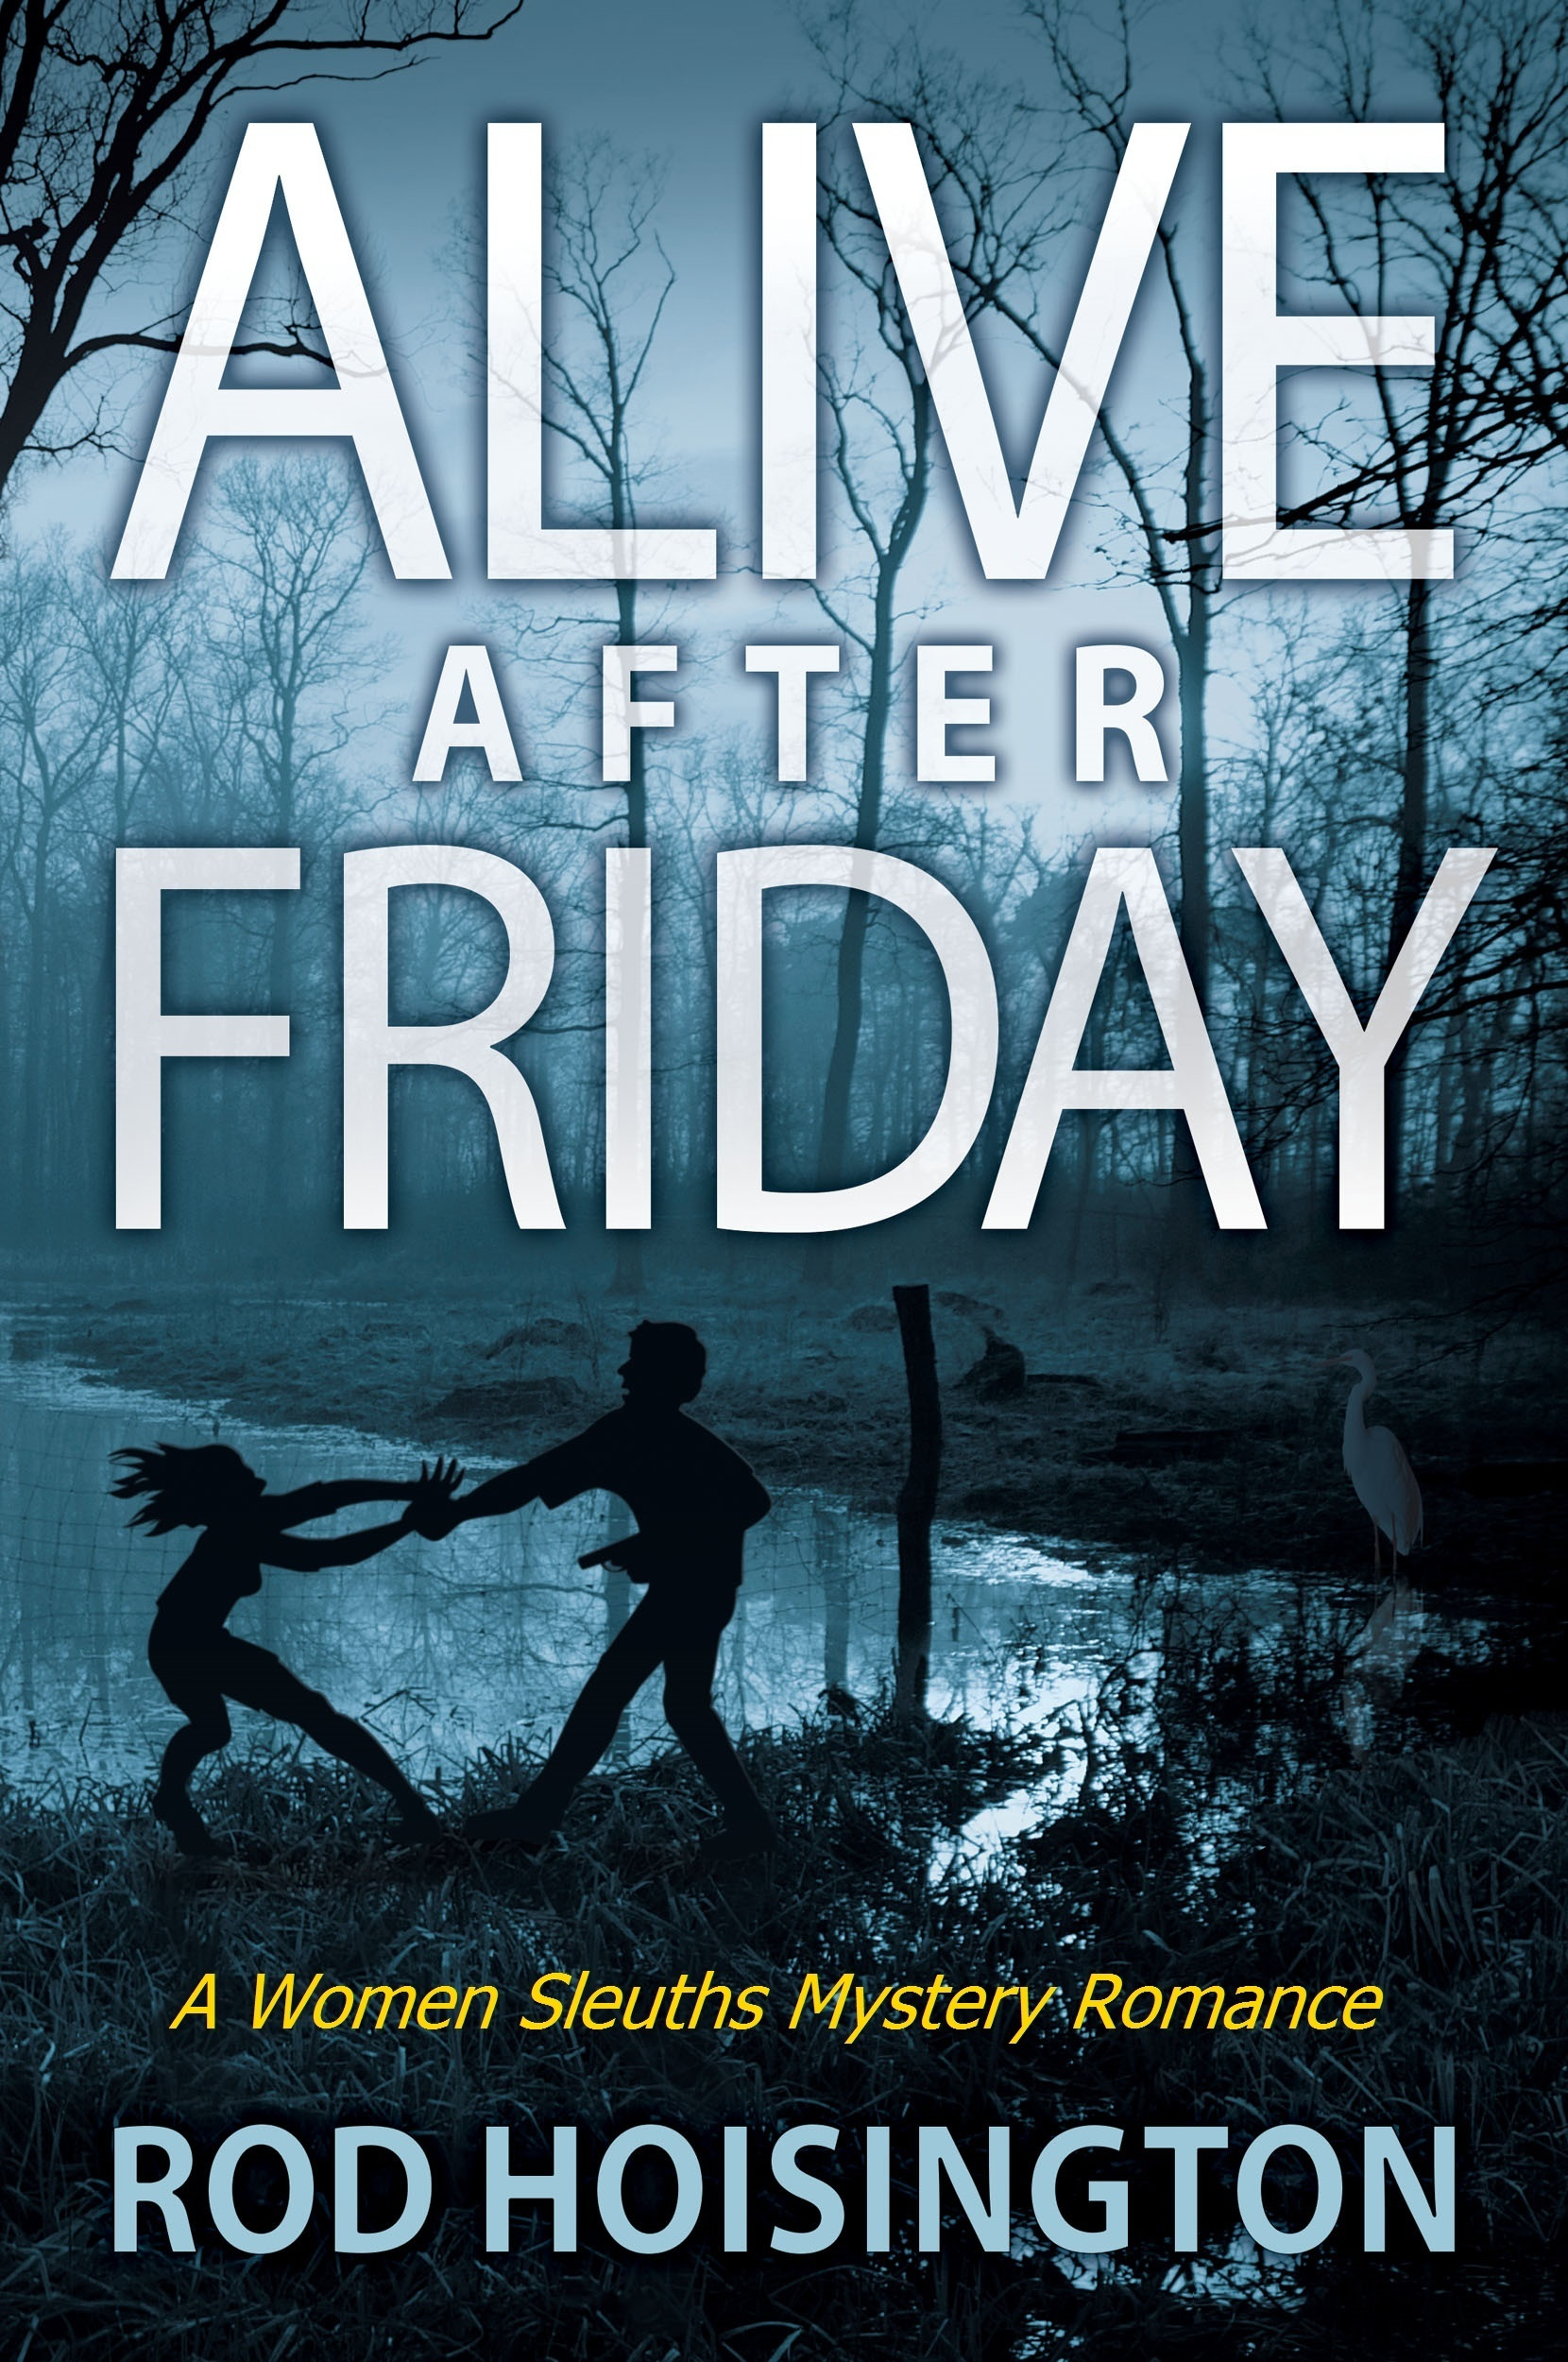 Alive After Friday A Women Sleuths Mystery Romance (Sandy Reid Mystery Series #5) [electronic resource]